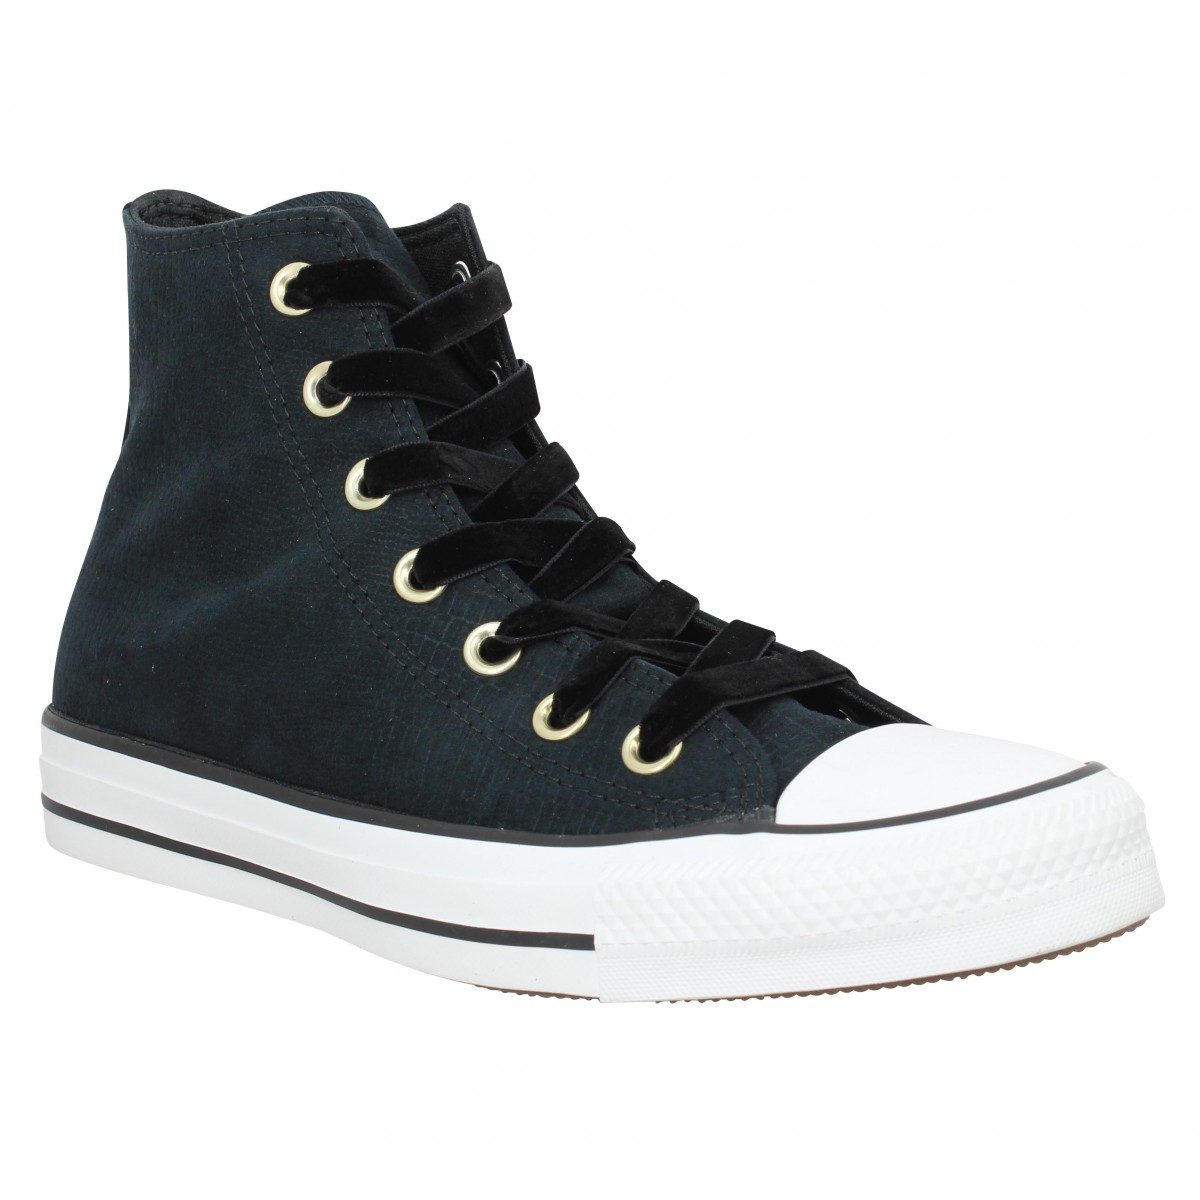 converse all star noire femme